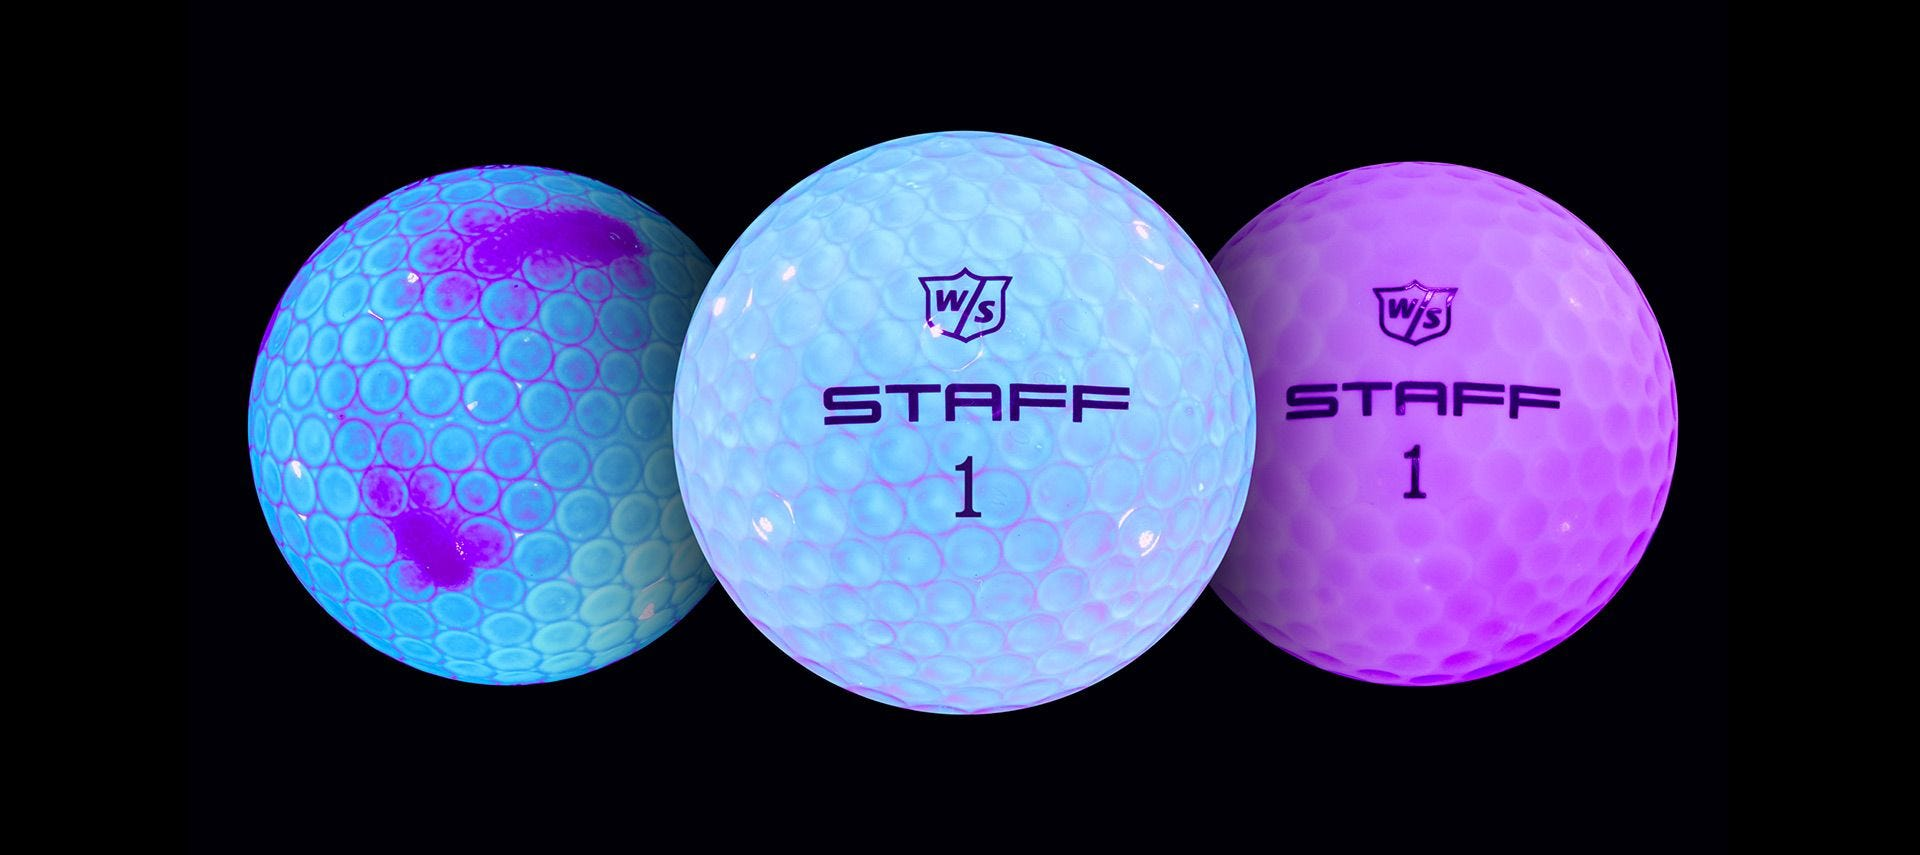 Golf Balls under black light showing inconsistent surfaces